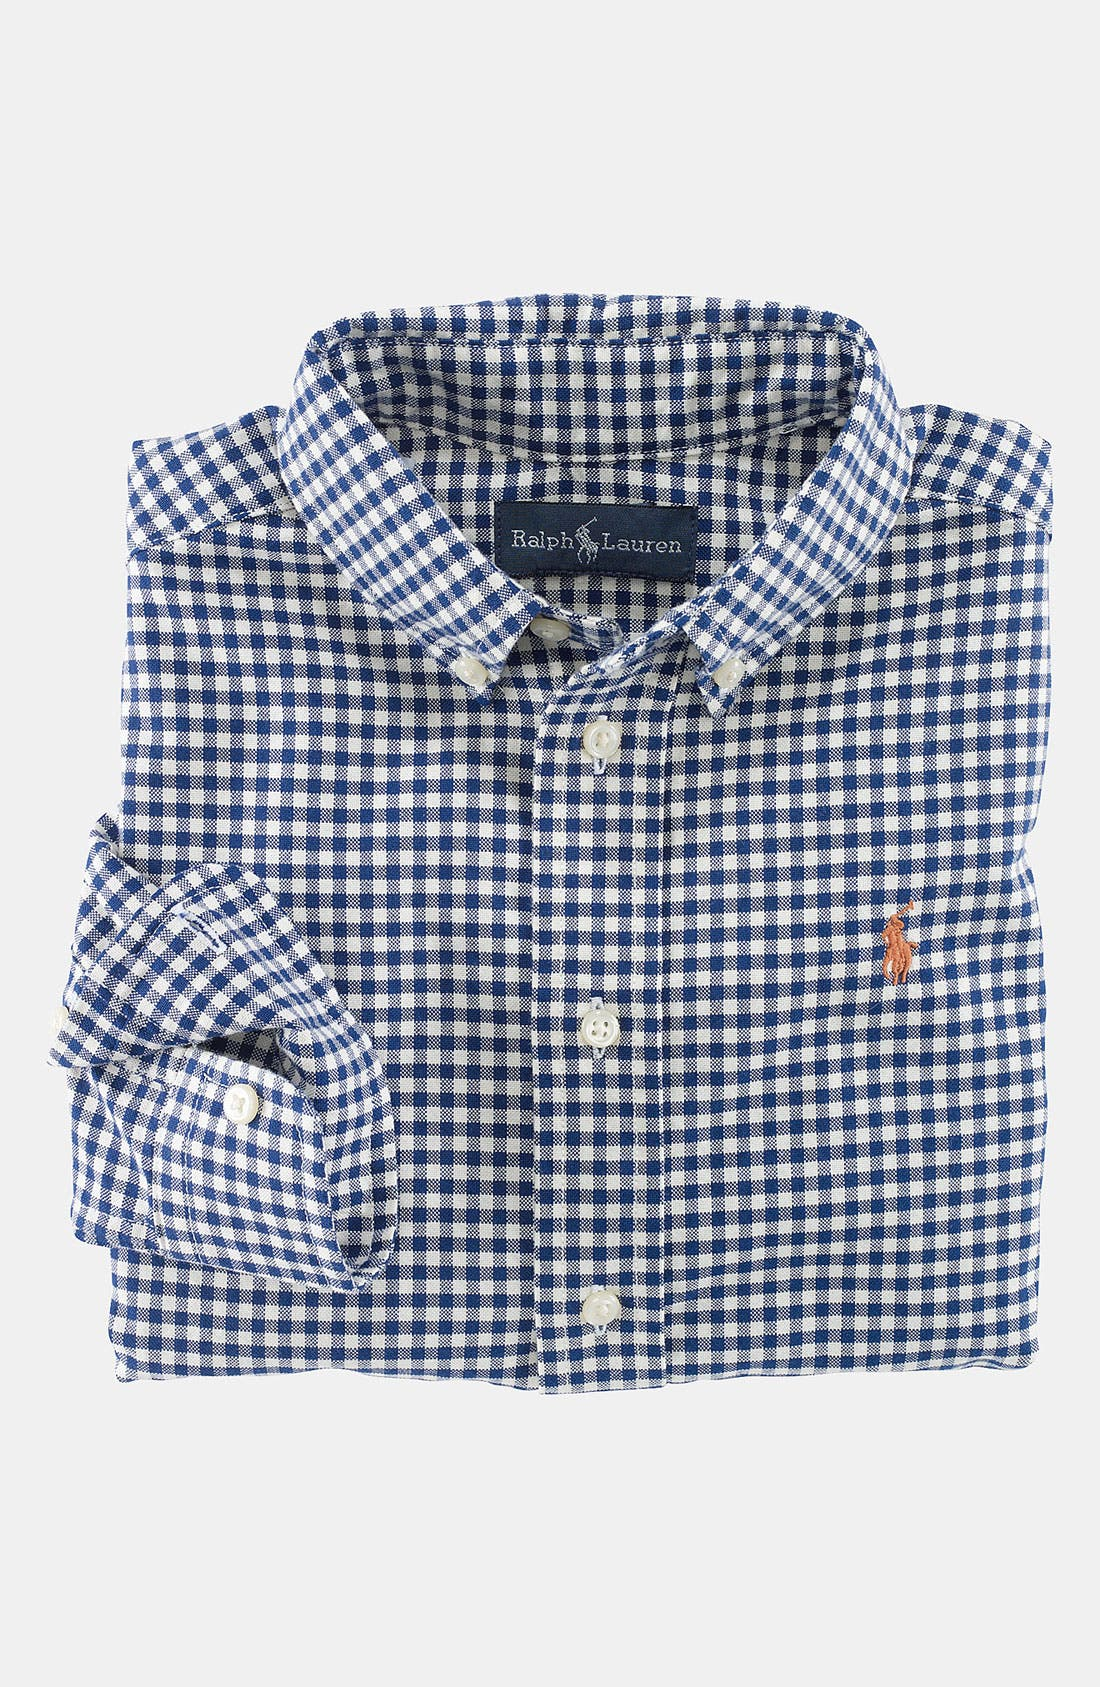 Alternate Image 1 Selected - Ralph Lauren Gingham Button Down Shirt (Toddler)